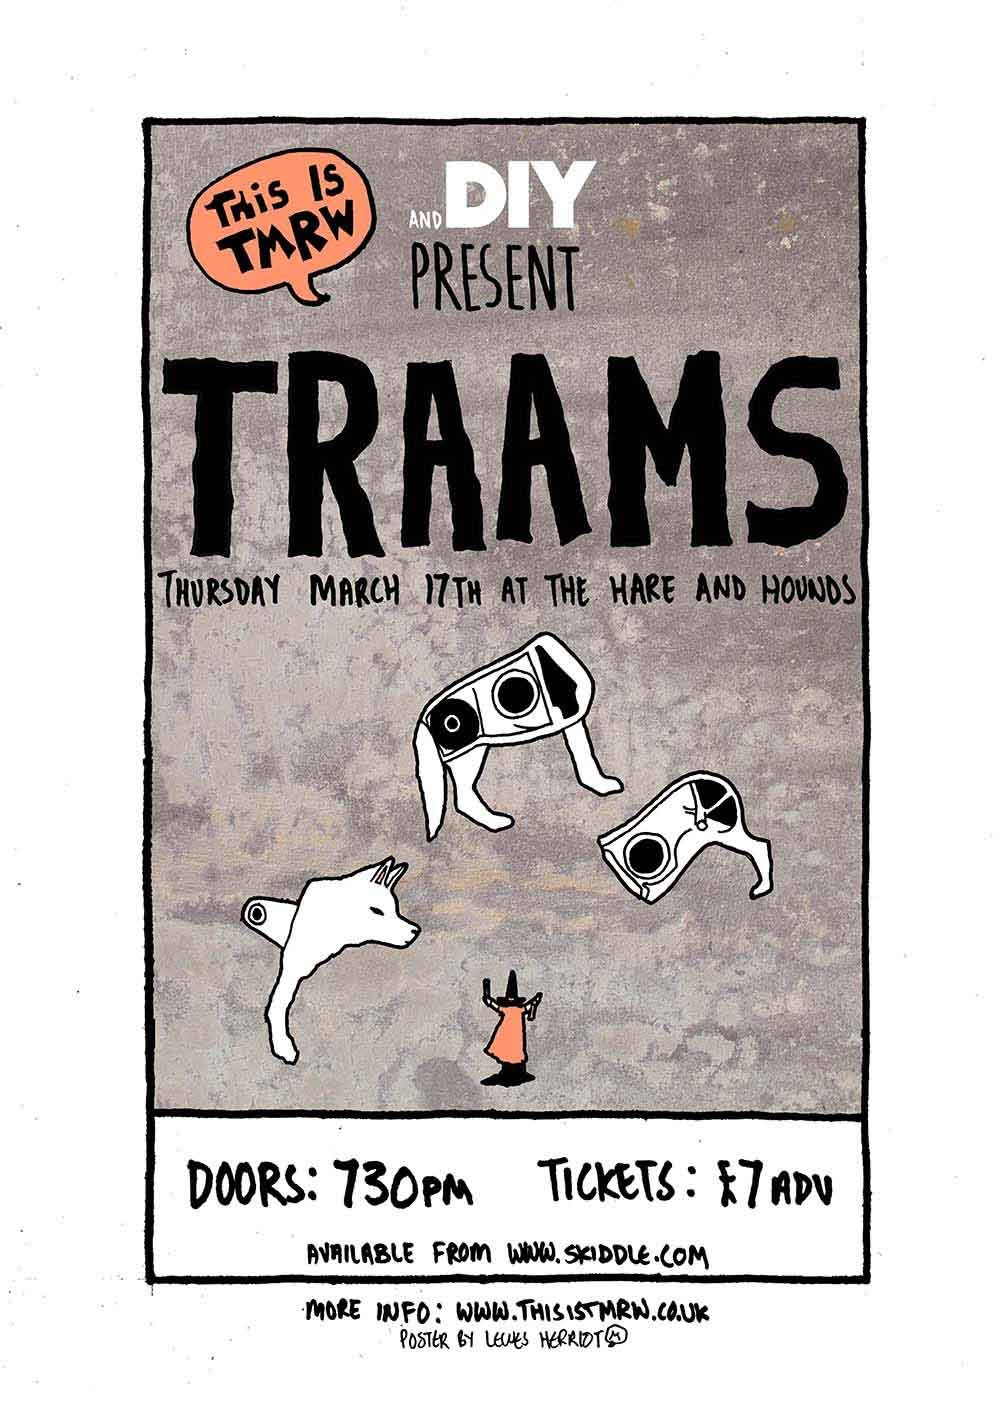 Traams to play DIY x This Is Tmrw show at Birmingham's The Hare & Hounds